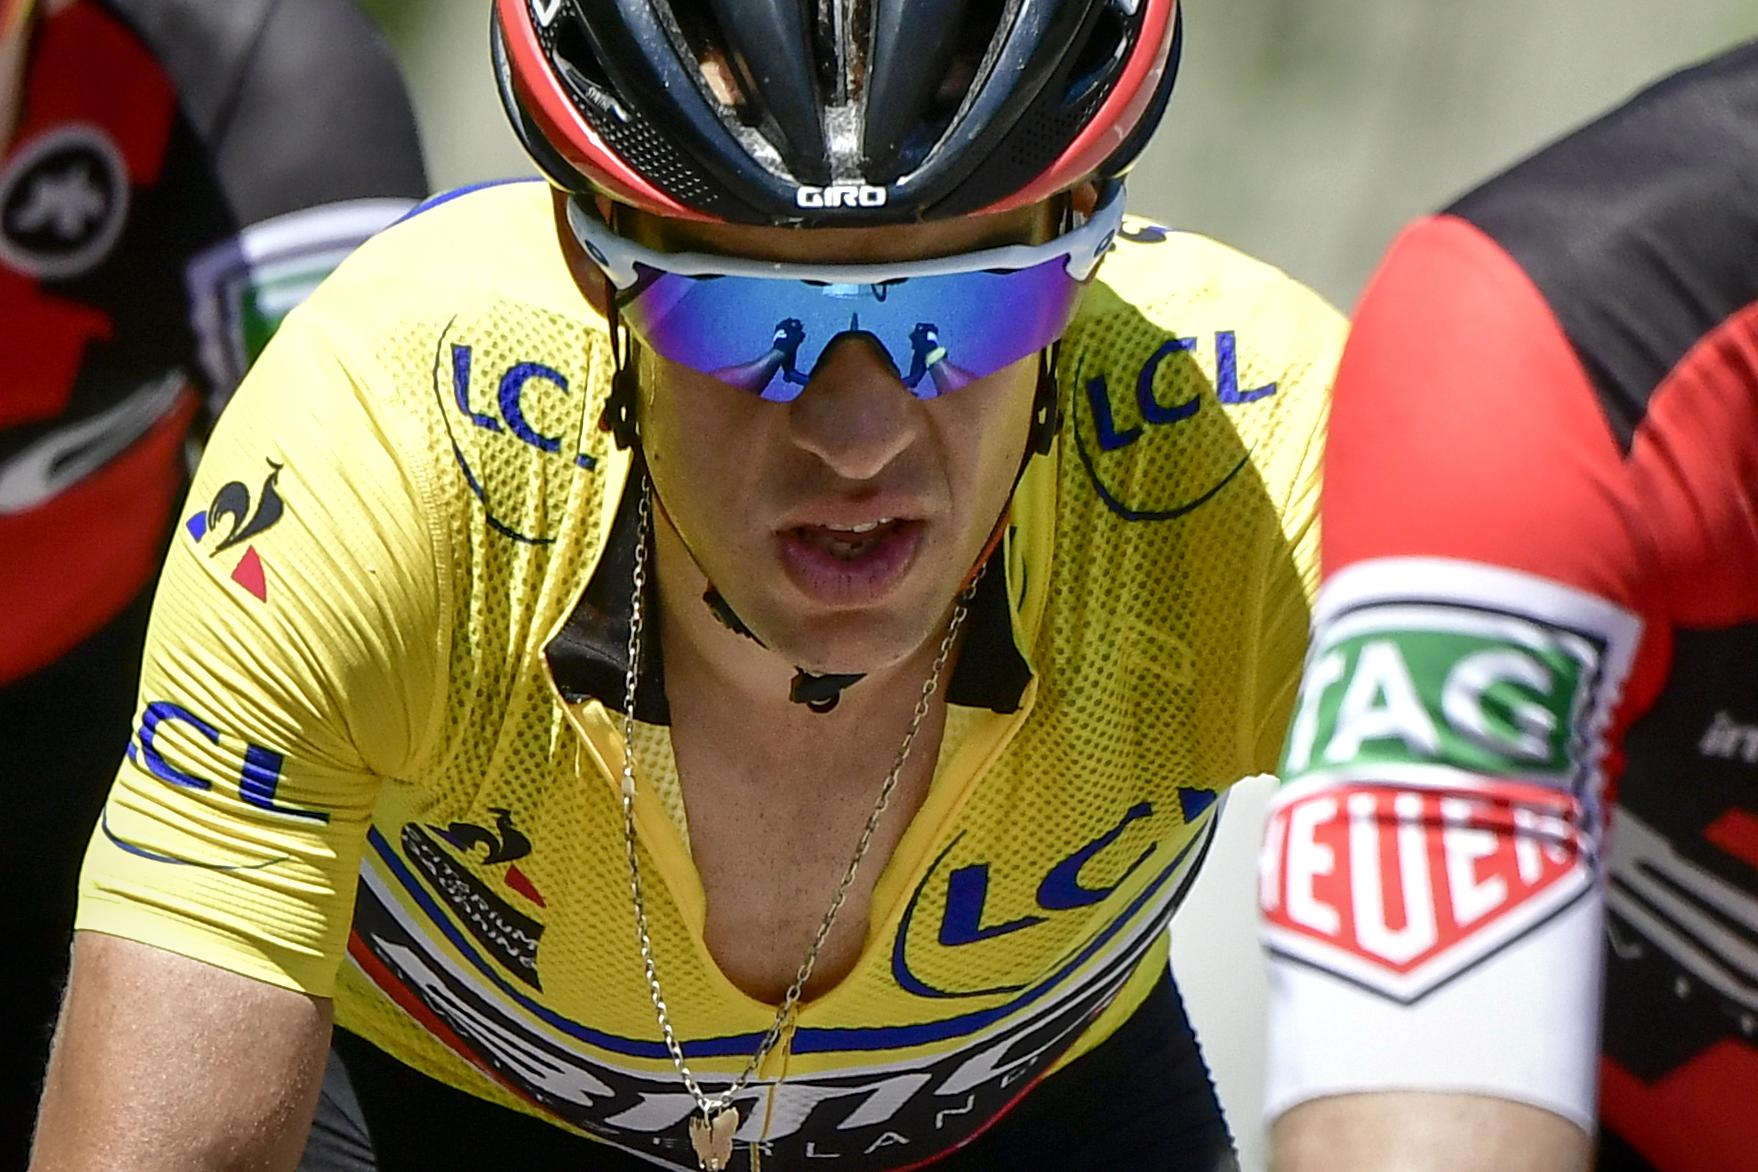 Richie Porte finished strongly in the leader's jersey to finish sixth on the day